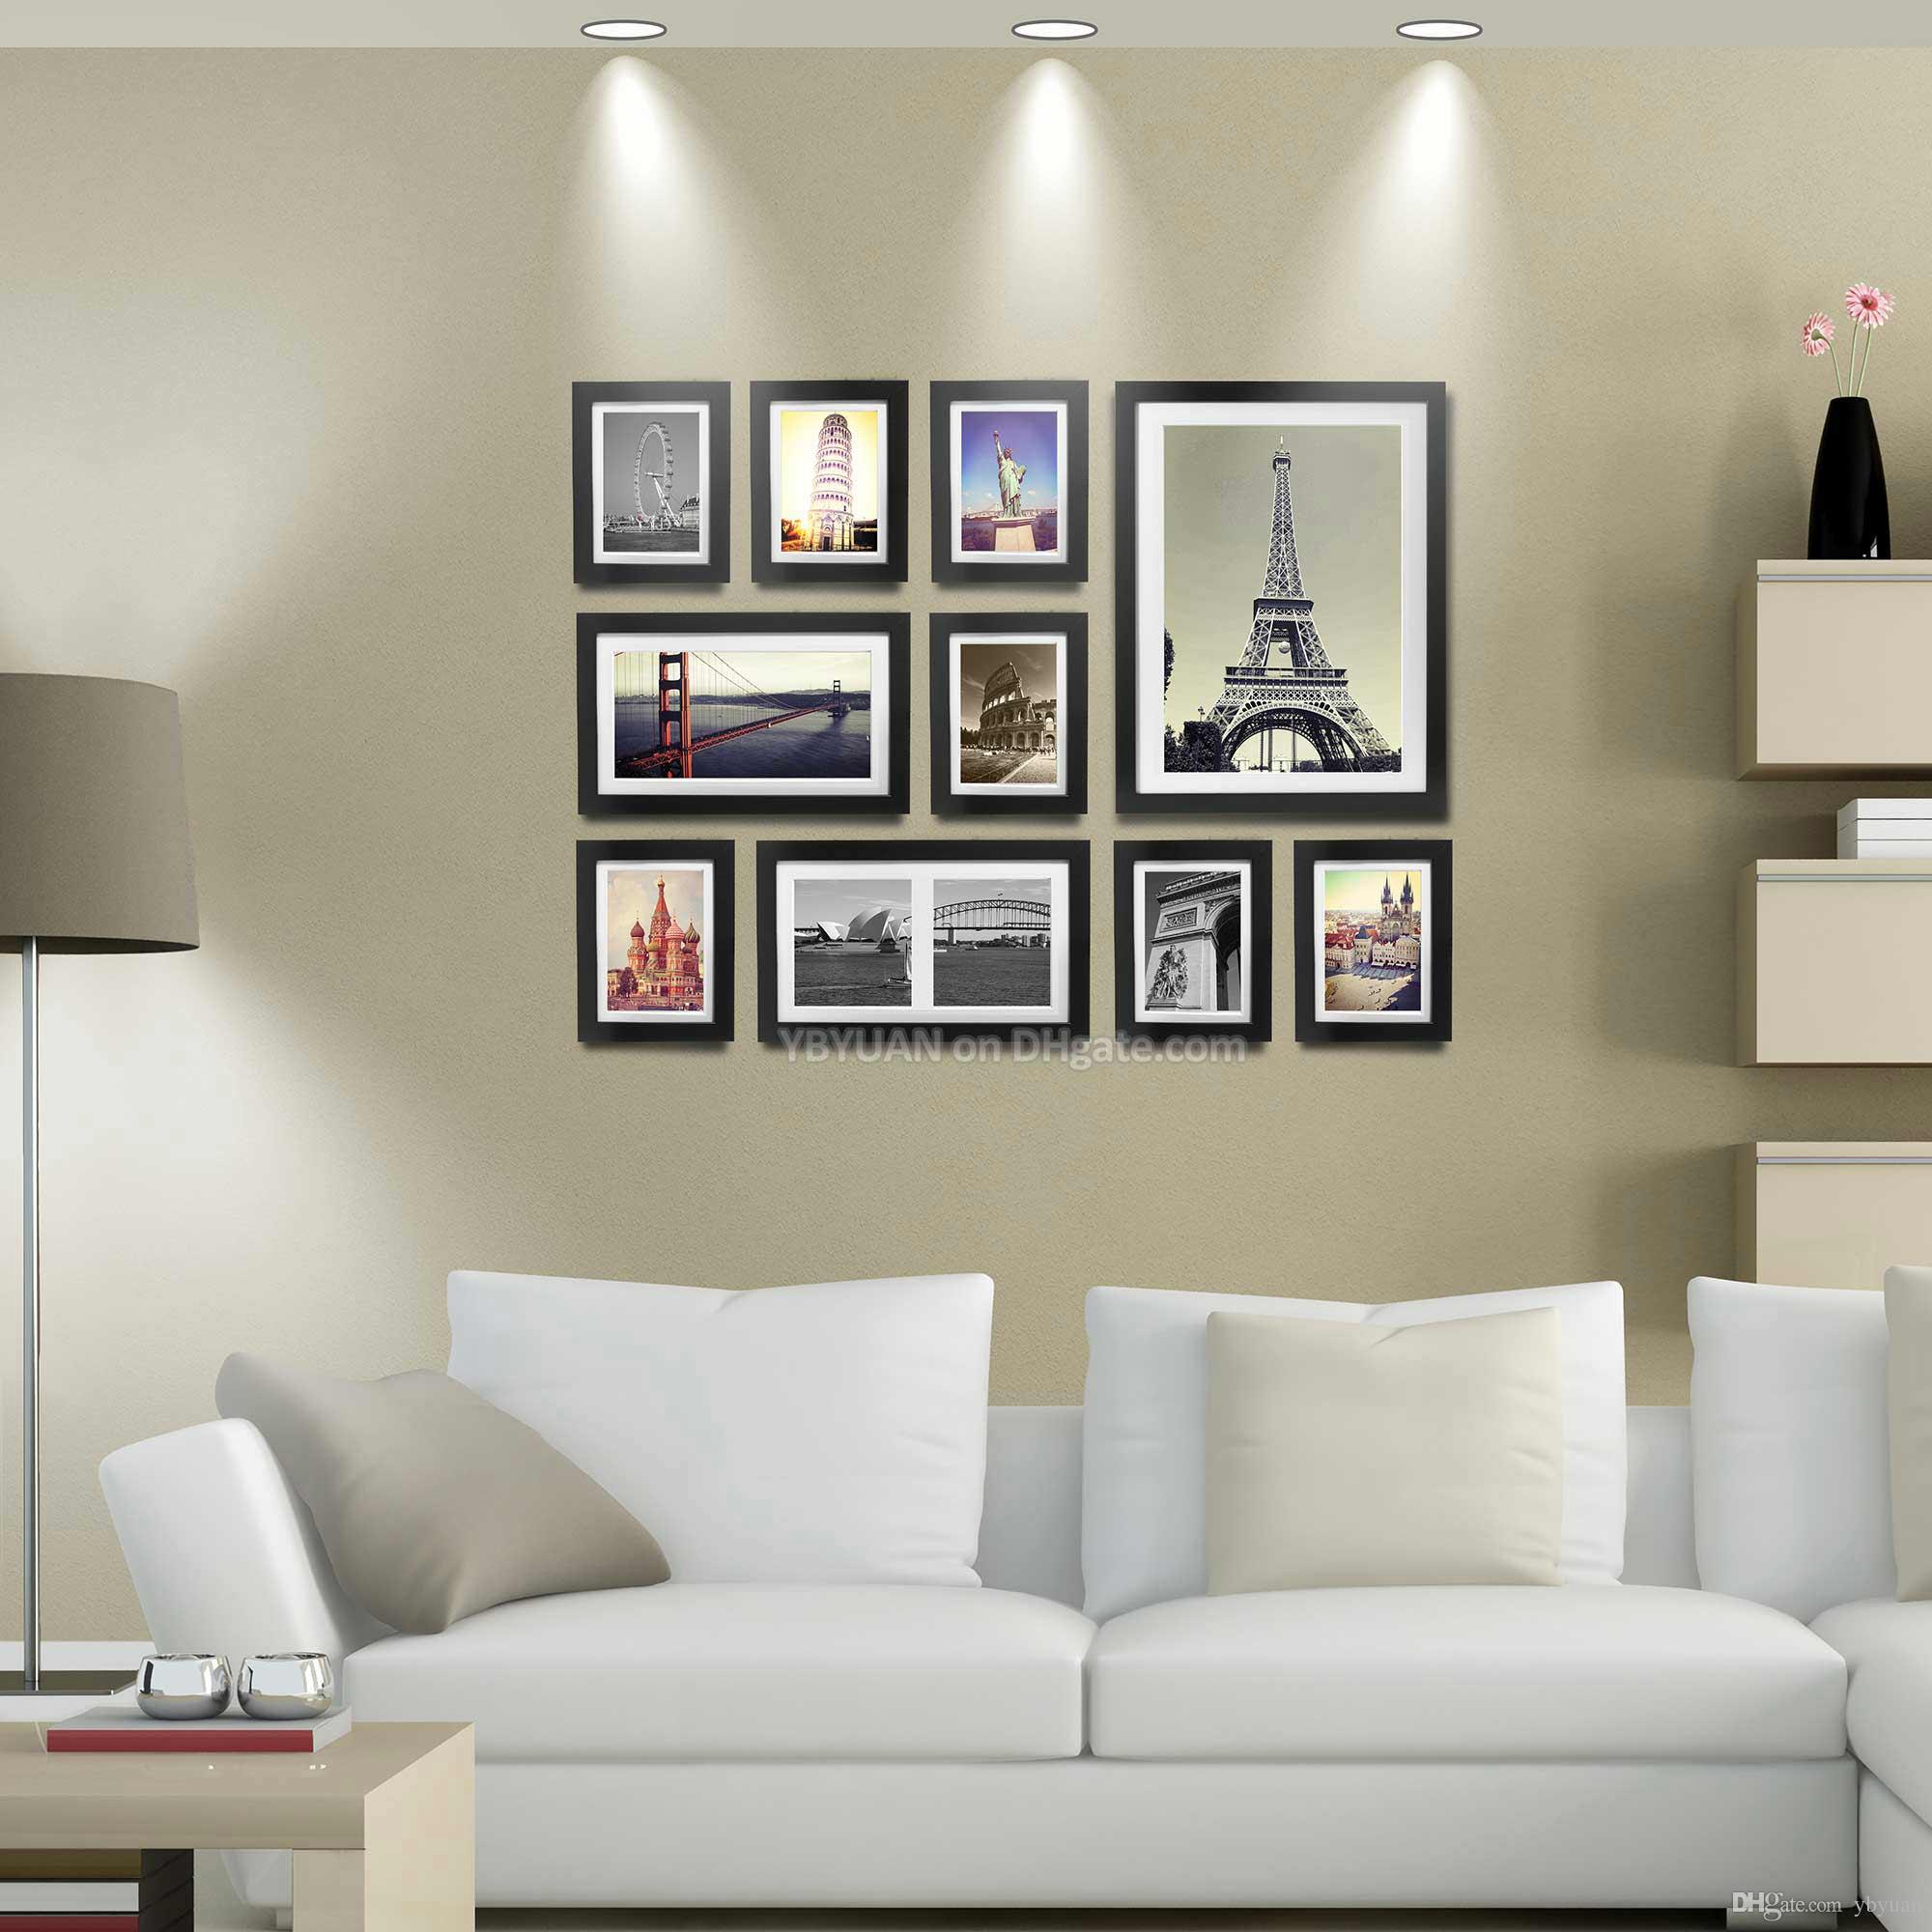 2018 wood photo frame gallery wall modern style flat moulding border